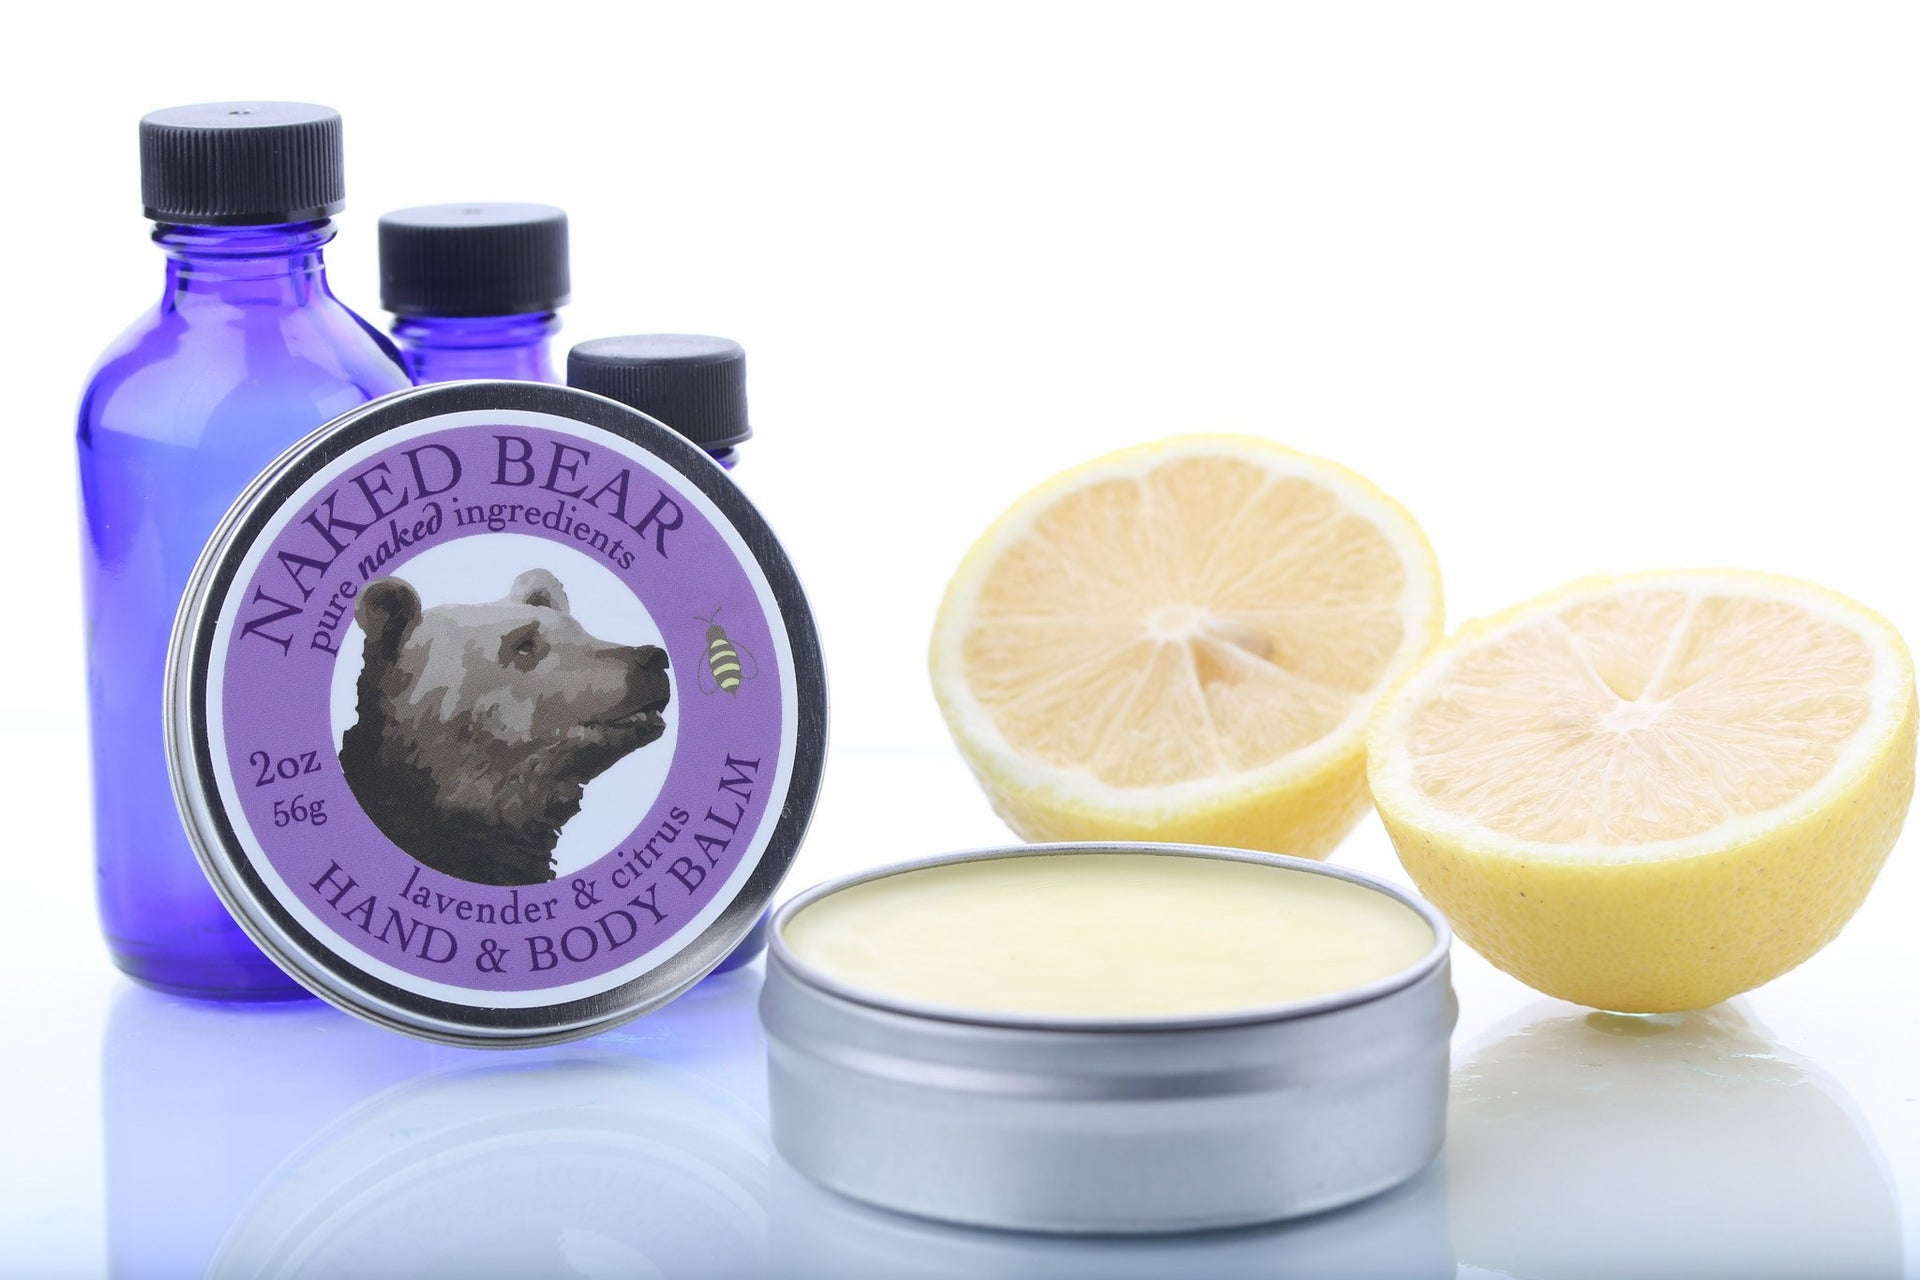 BazaarMPLS, Naked Bear Naturals - Scented Hand & Body Balms, Naked Bear Naturals, Personal Care, Shop Minnesota Online, Shop Local MN